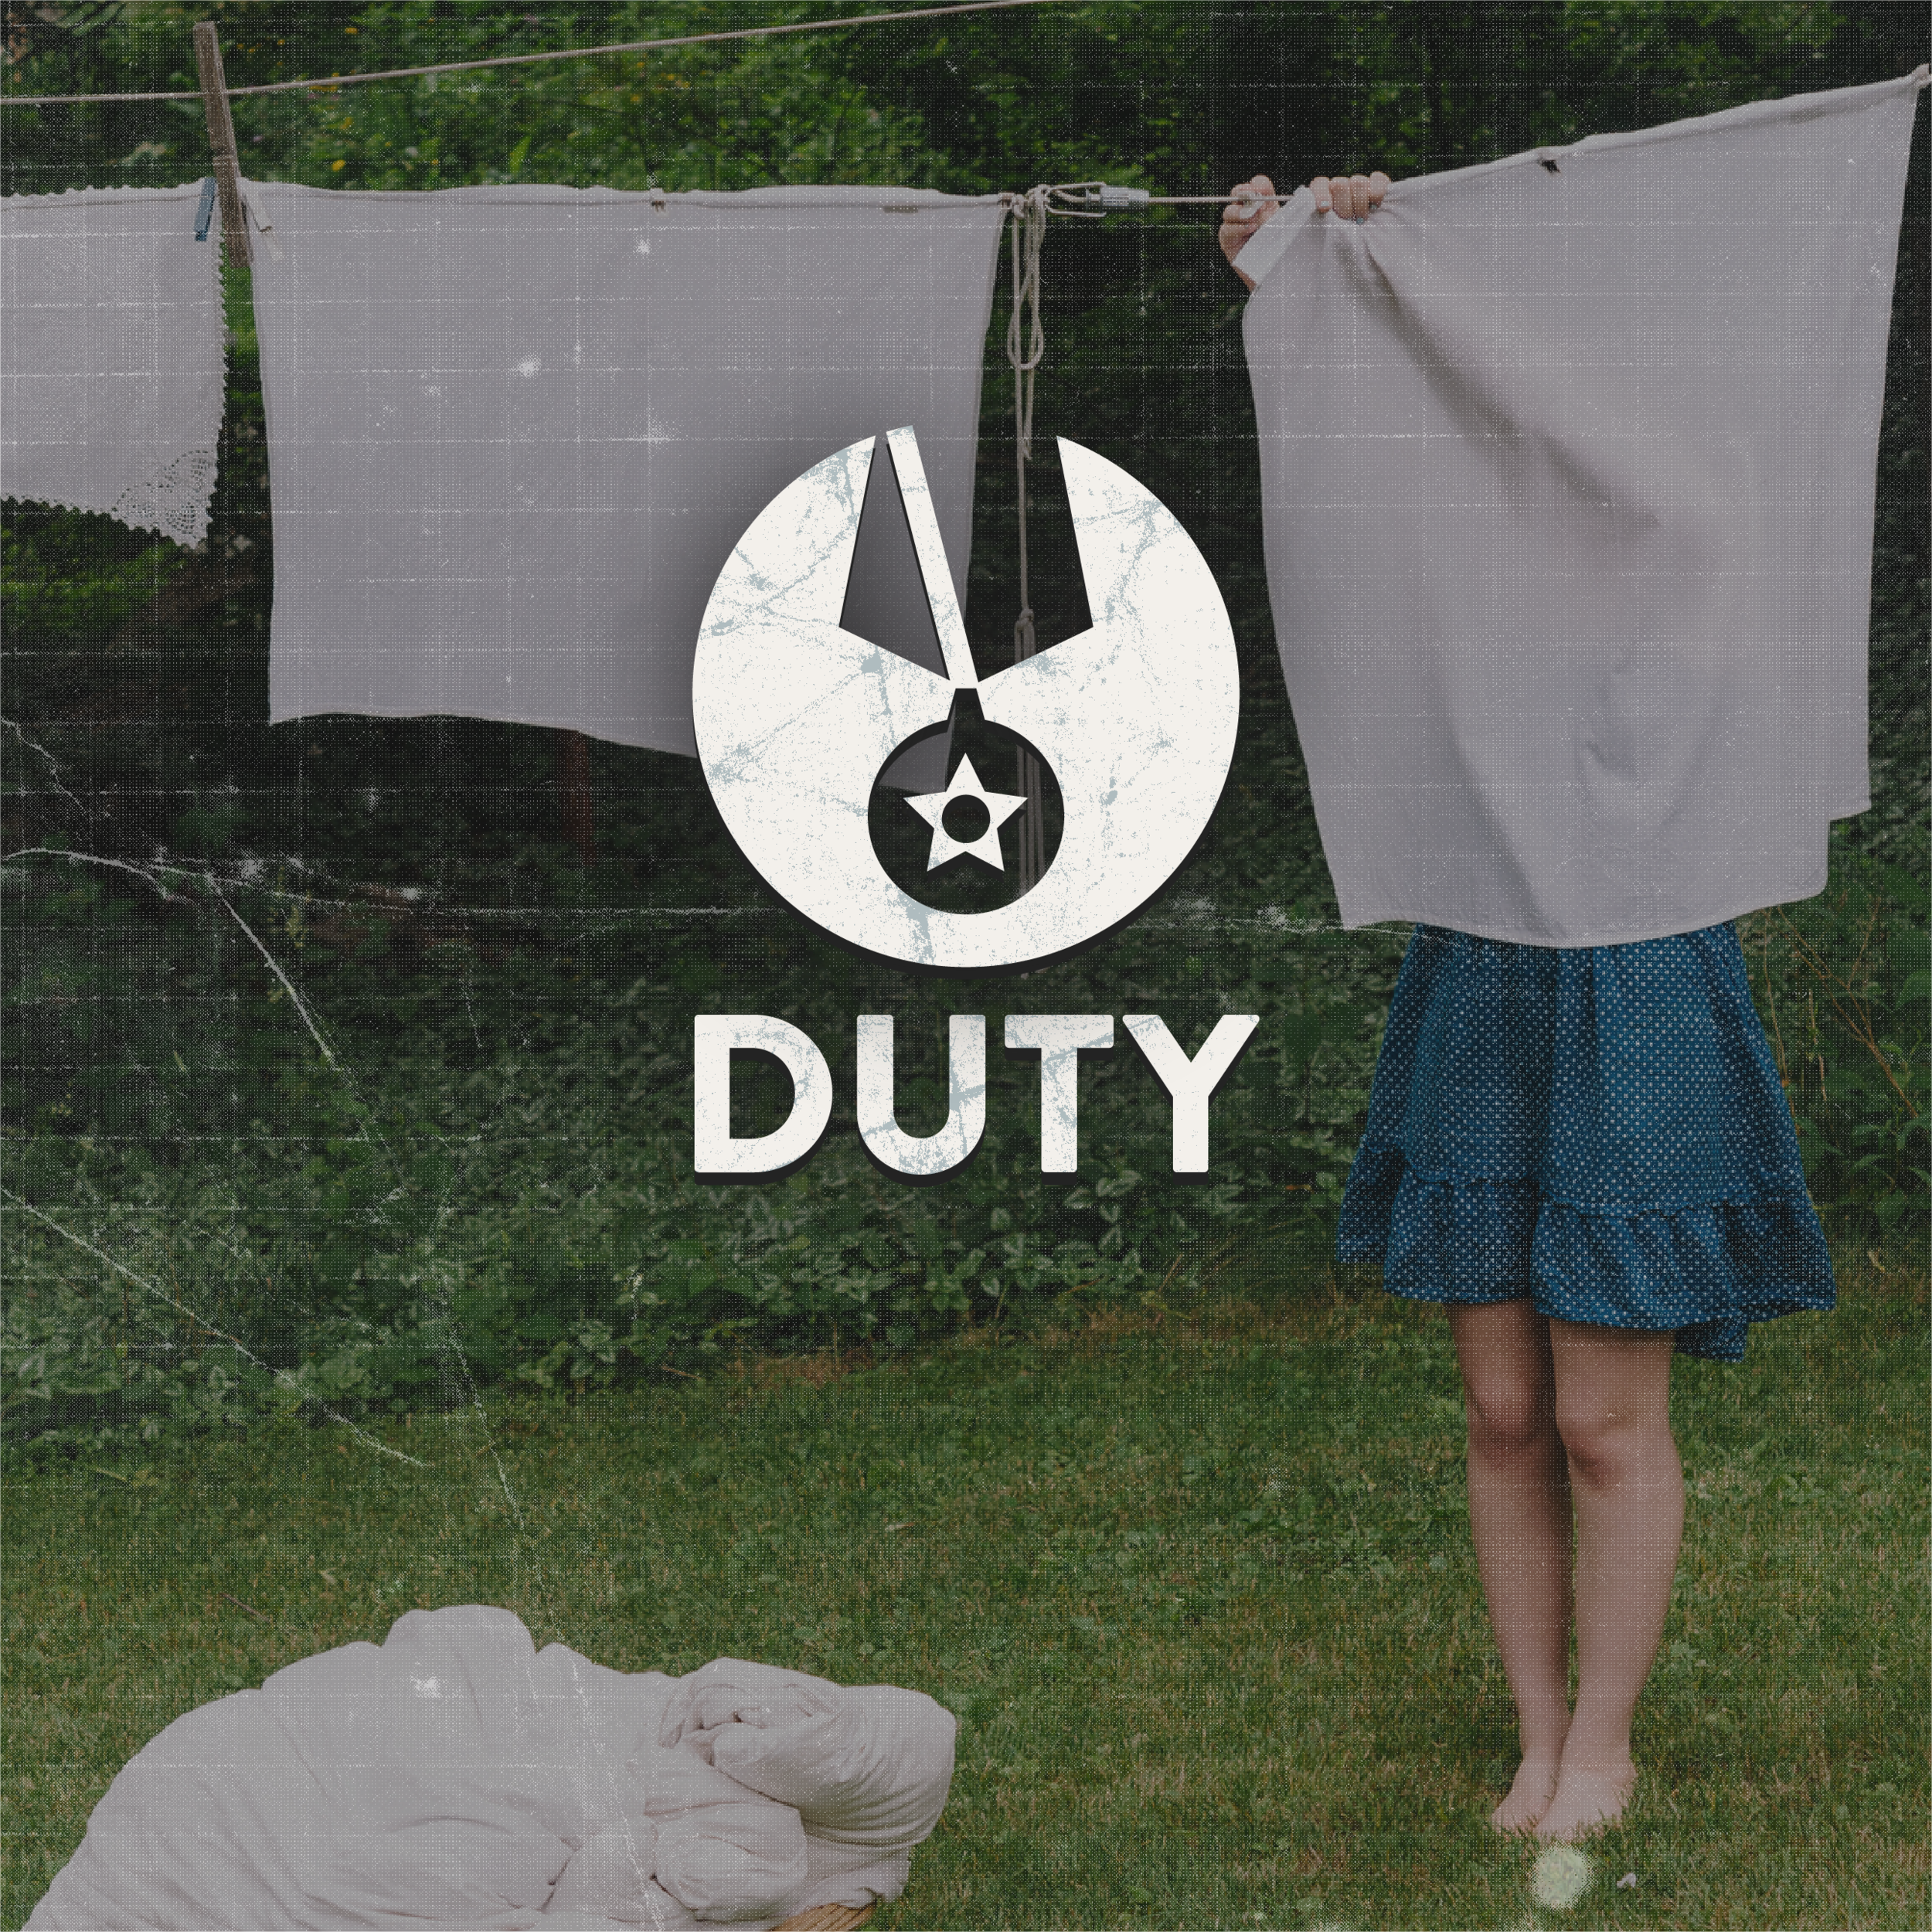 PGP1506_Slow Culture_WebsiteCover_Duty-01.png